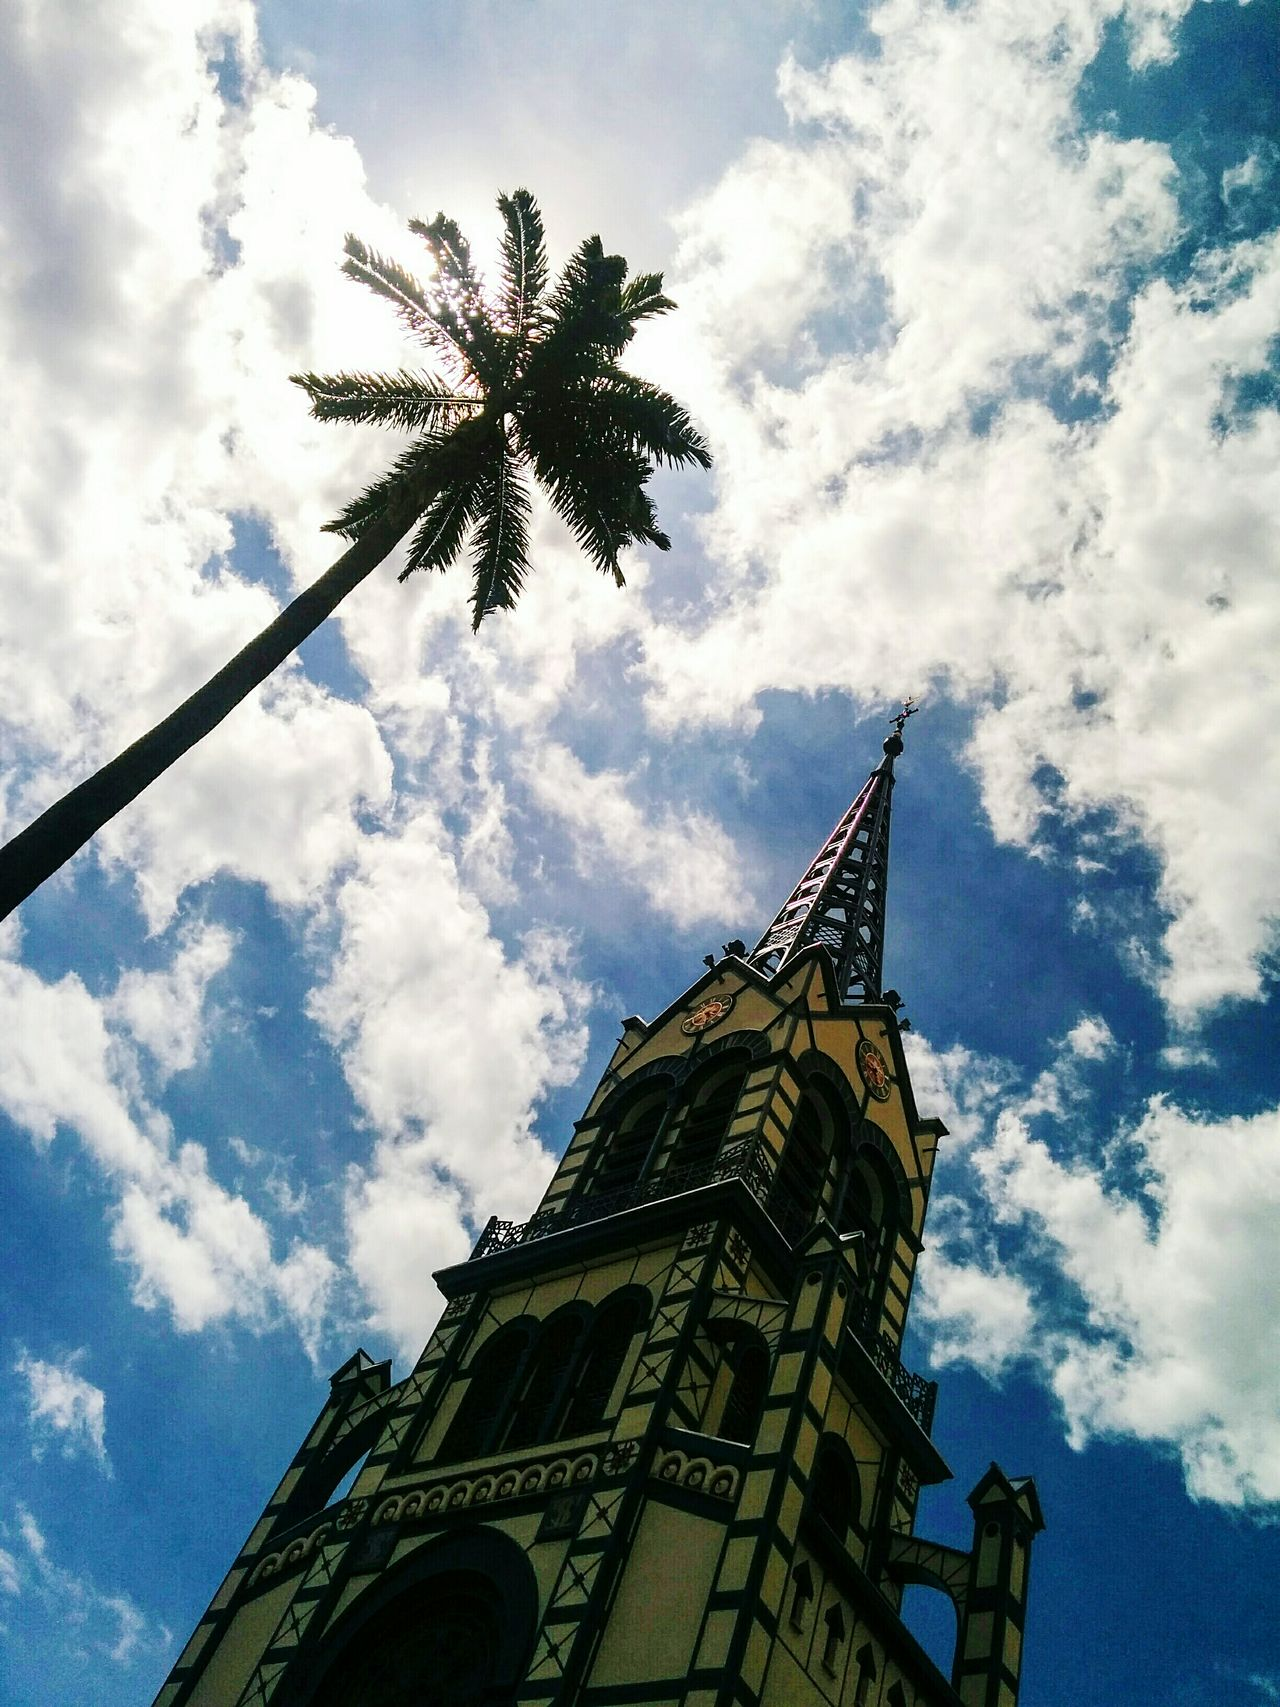 Different point of view Cloud - Sky Sky Low Angle View Architecture Travel Destinations Built Structure aOutdoors No People Tower Building Exterior Day City Palm Tree Tree Clock Tower Nature Open Edit Fresh 3 Eye4photography  EyeEm Best Shots Lookingup Palm Tree